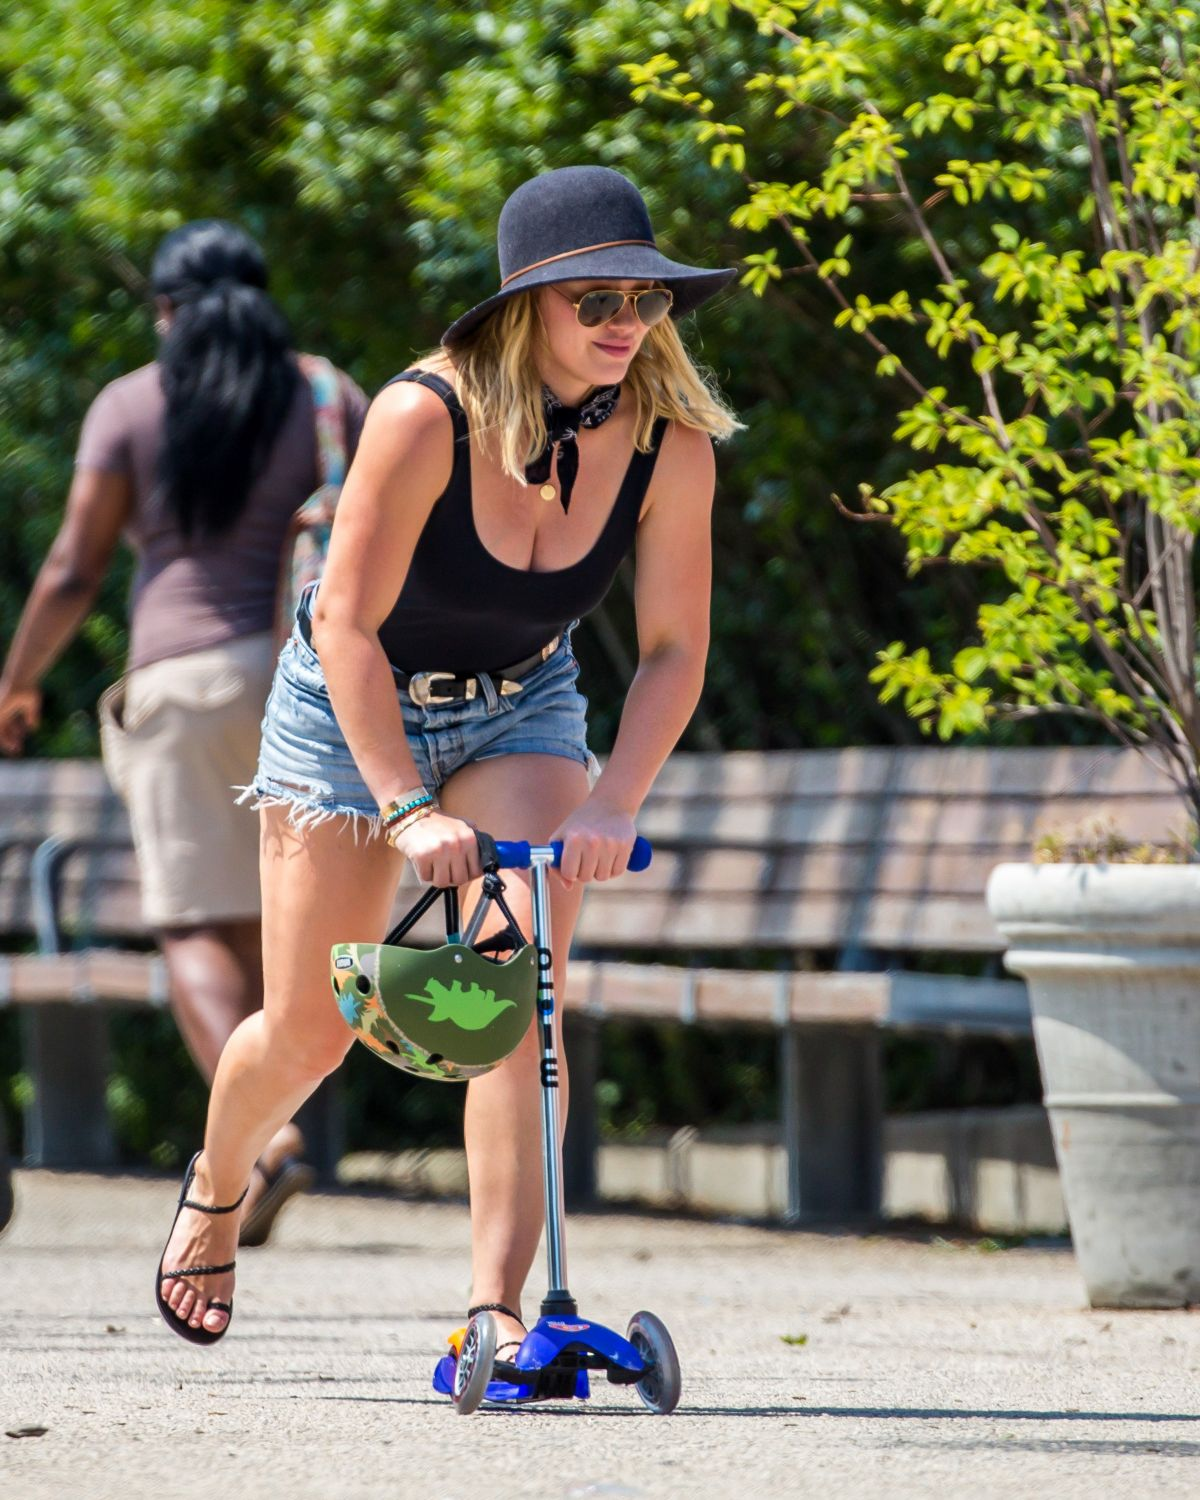 Hilary Duff At A Park In New York 07 22 2016 Hawtcelebs